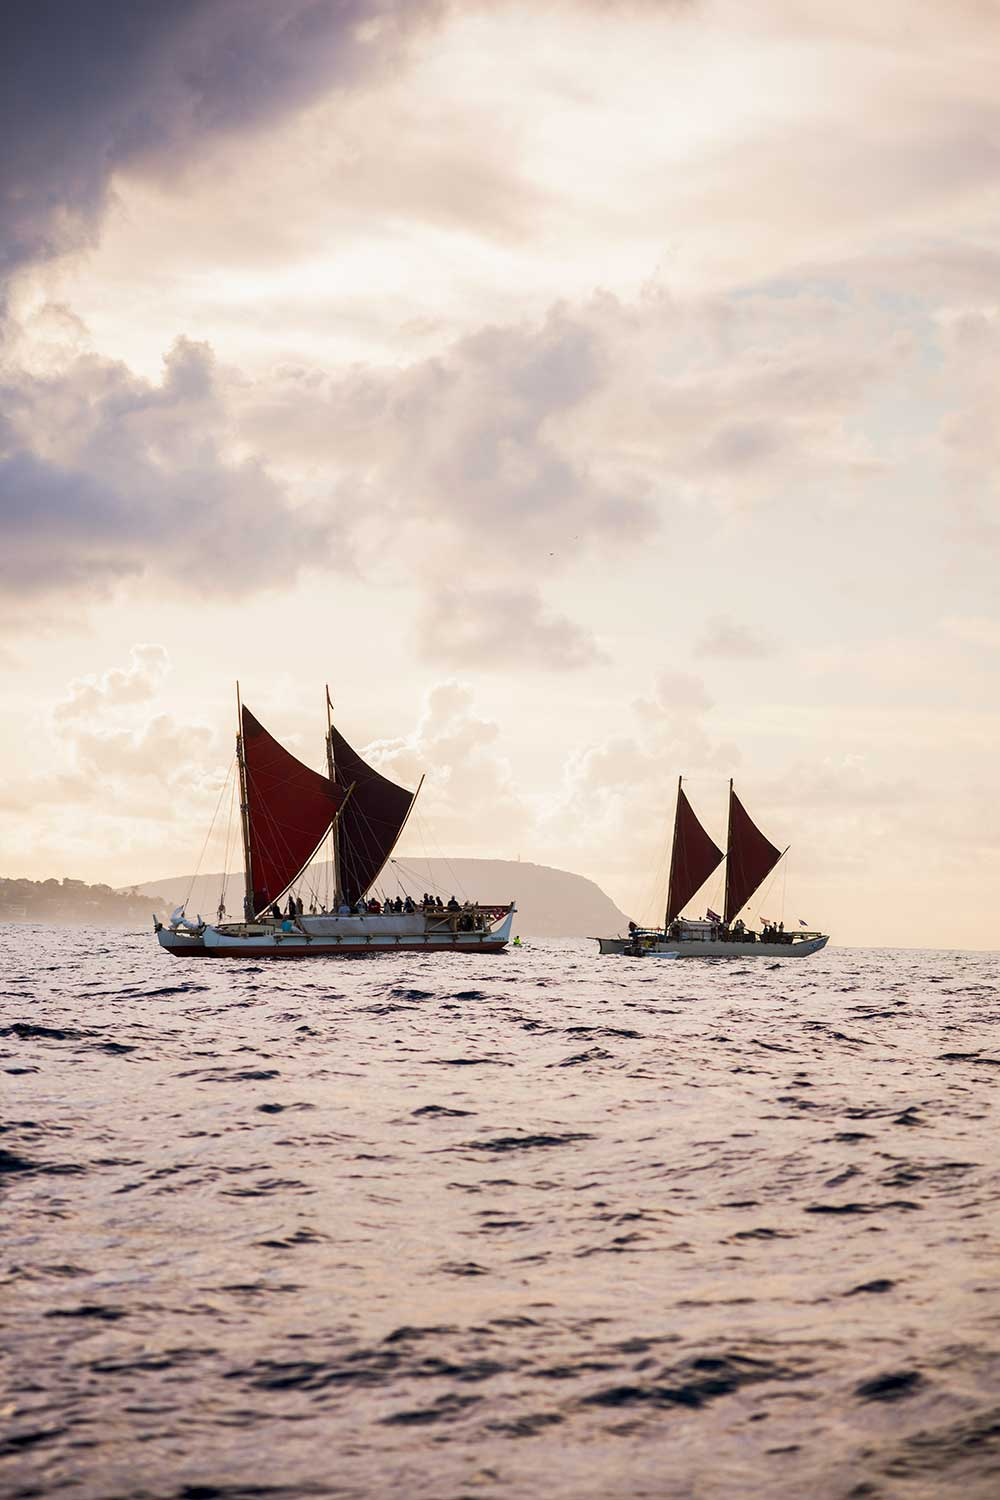 Through filmmaking, a rare documentative opportunity of the voyaging canoe Hōkūle'a arrives to the screen.